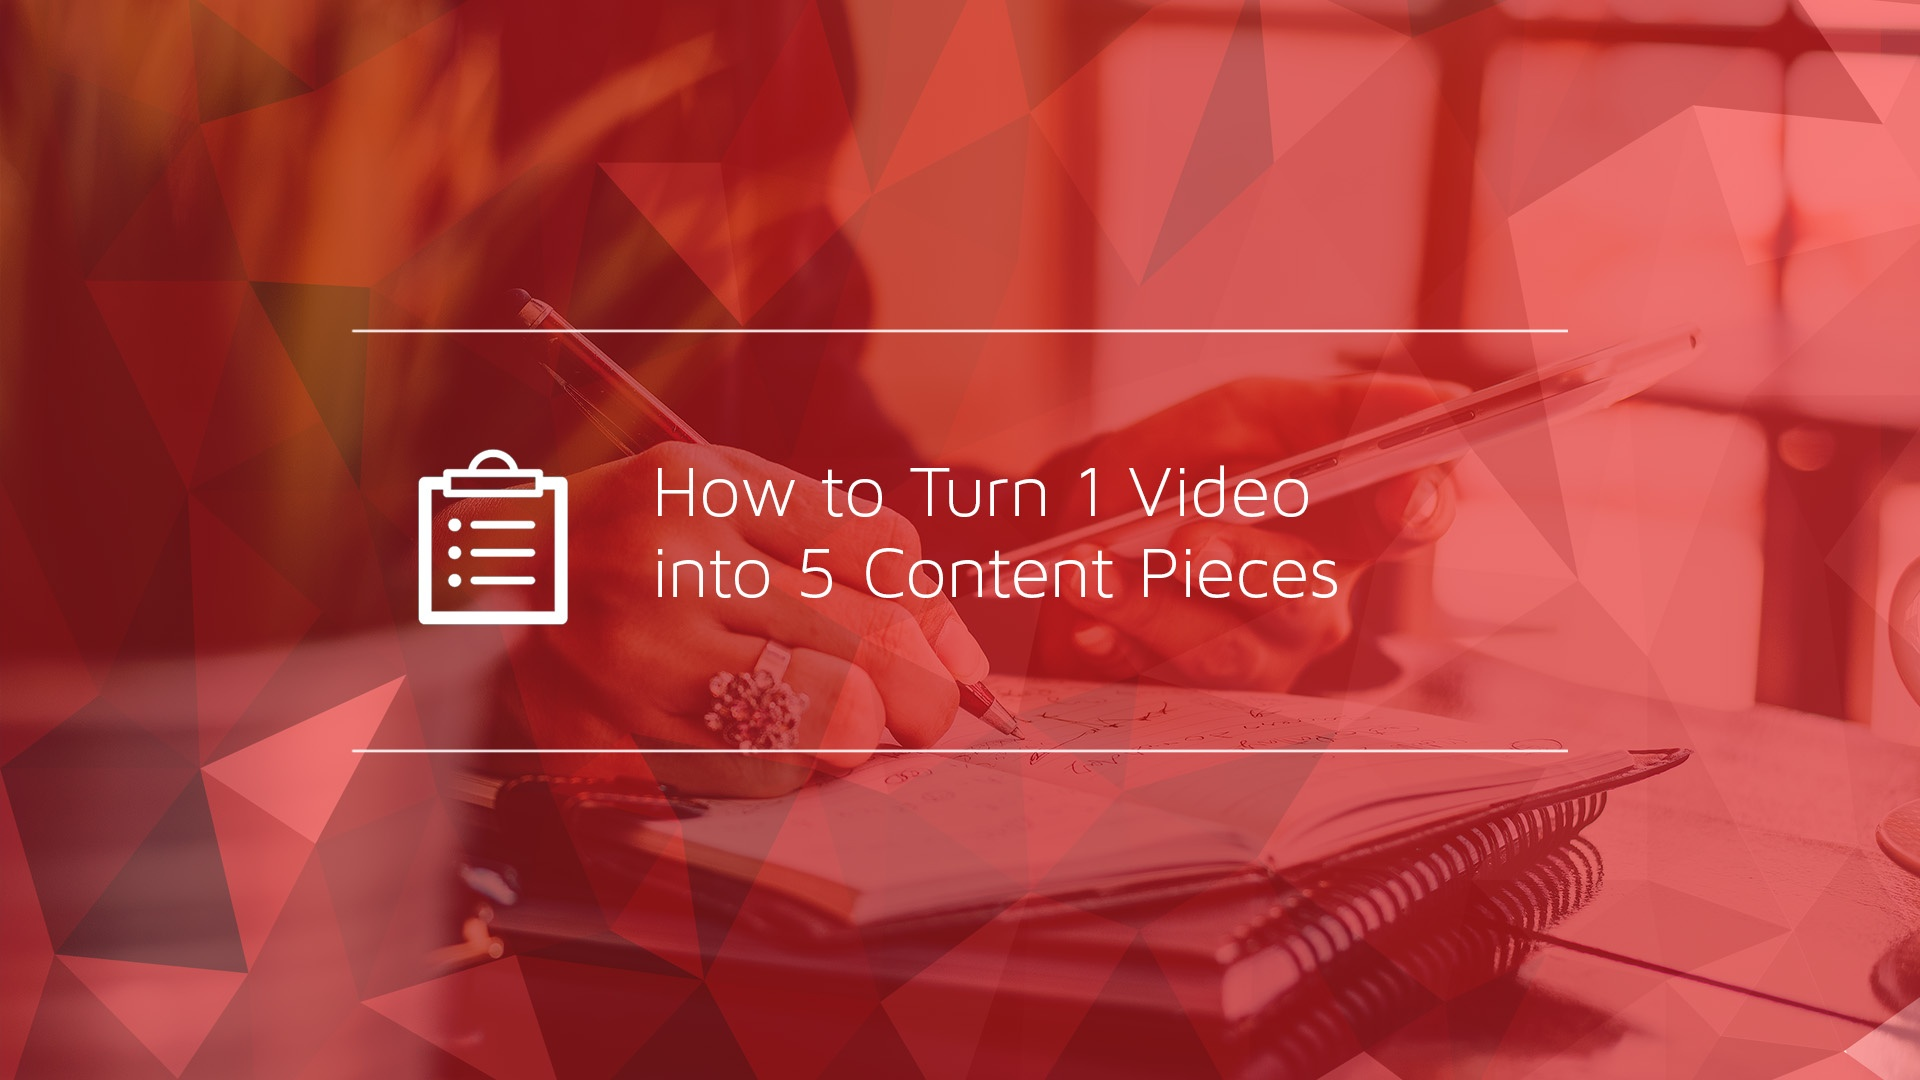 How to Turn 1 Video into 5 Content Pieces.jpg